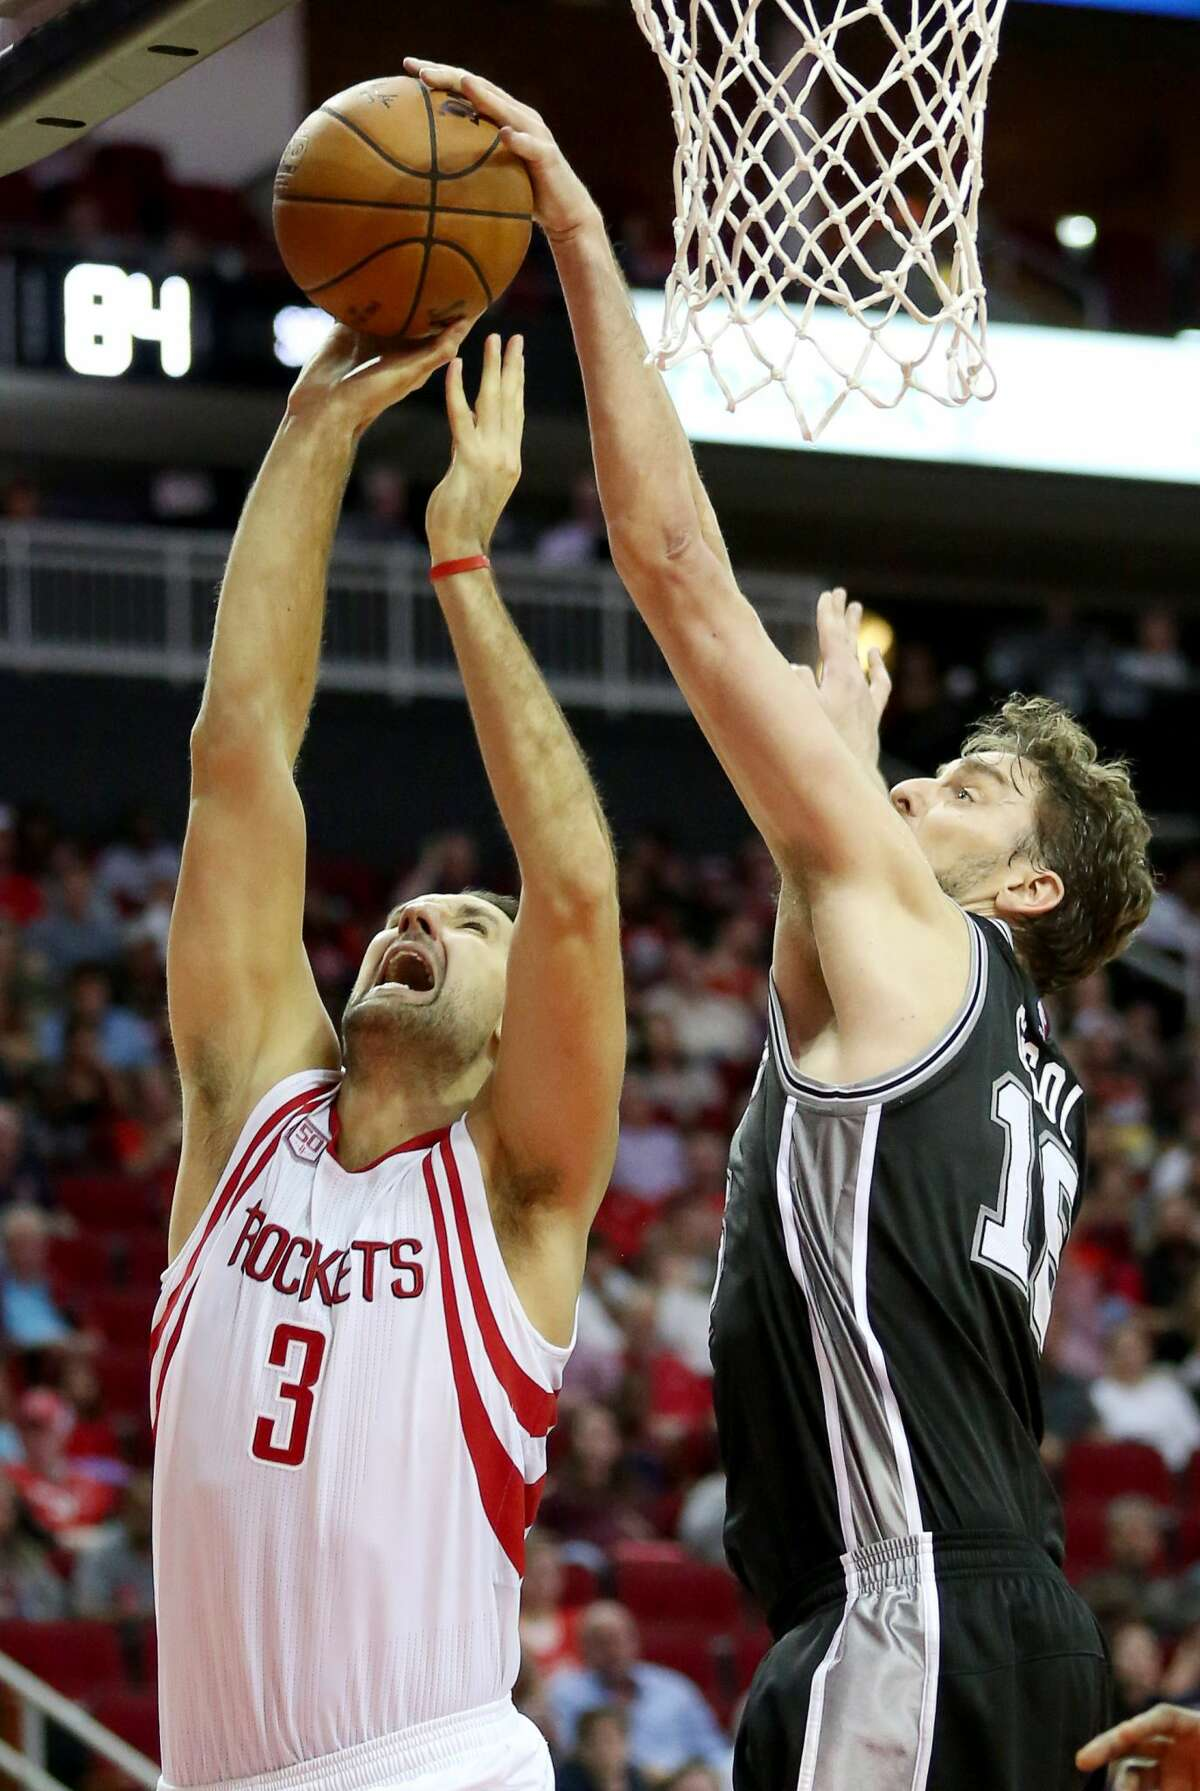 Houston Rockets forward Ryan Anderson (3) is fouled by San Antonio Spurs center Pau Gasol (16) under the basket during the second half of the game Saturday, Nov. 12, 2016, in Houston. The Rockets lost to the Spurs 106-100. ( Yi-Chin Lee / Houston Chronicle )